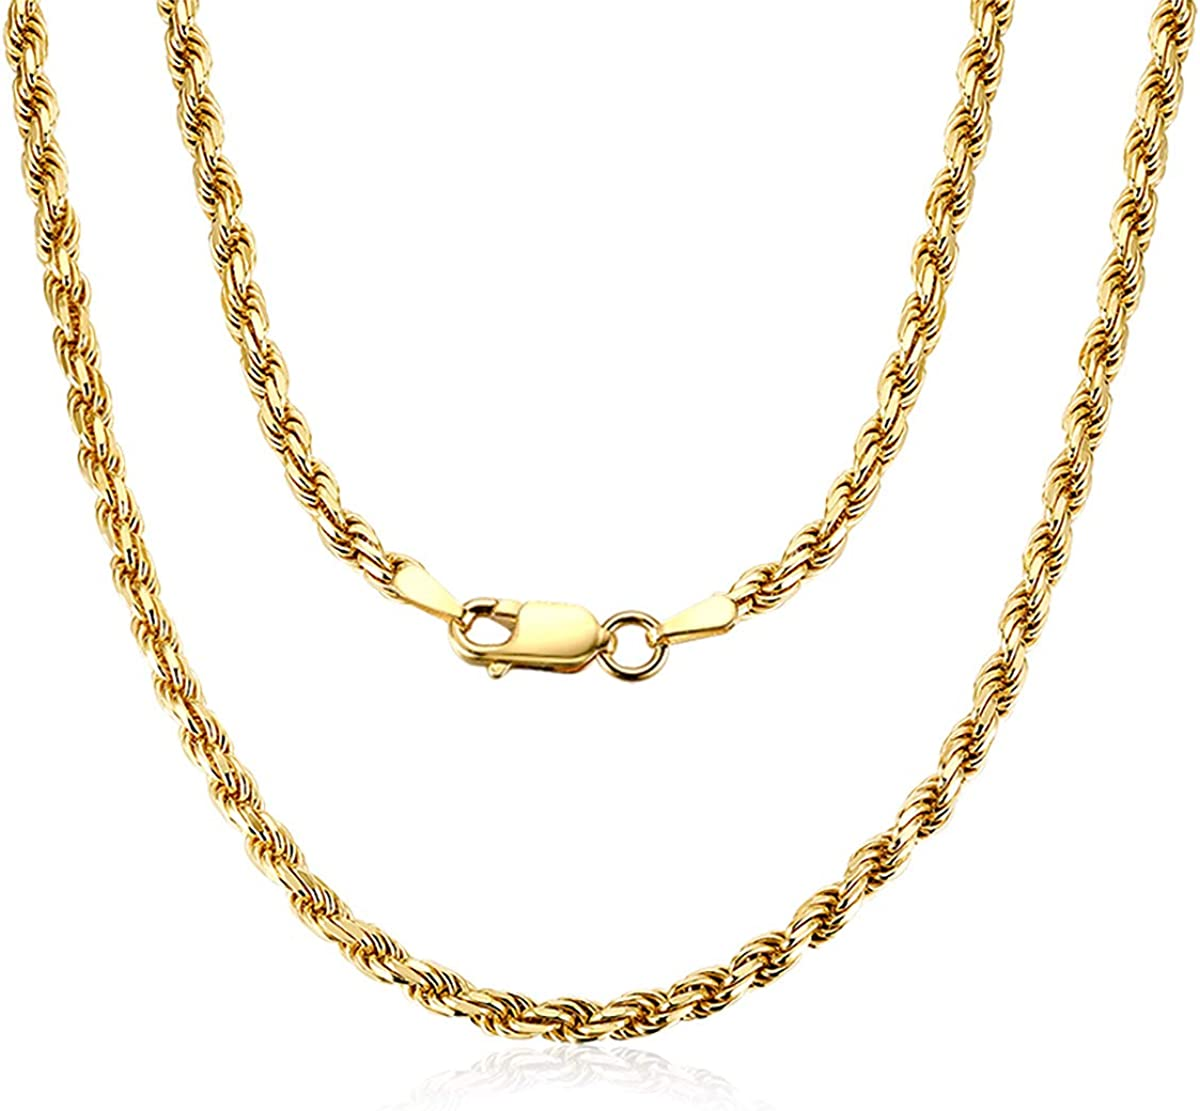 AINUOSHI Yellow New products world's highest quality popular Gold or Rhodium Sterling Plated At the price of surprise 1.4mm-5.0 Silver